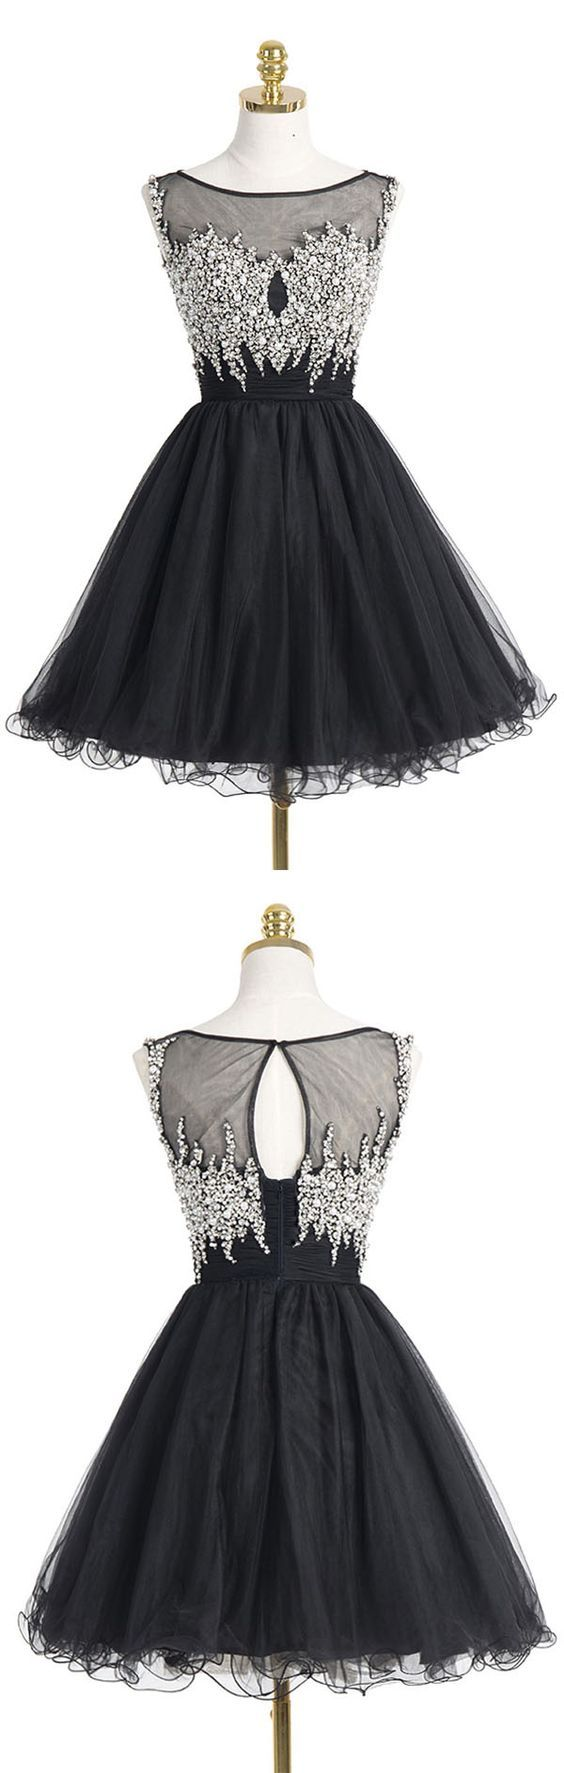 Black Homecoming Dress,Tulle Homecoming Dresses,Short Prom Dress